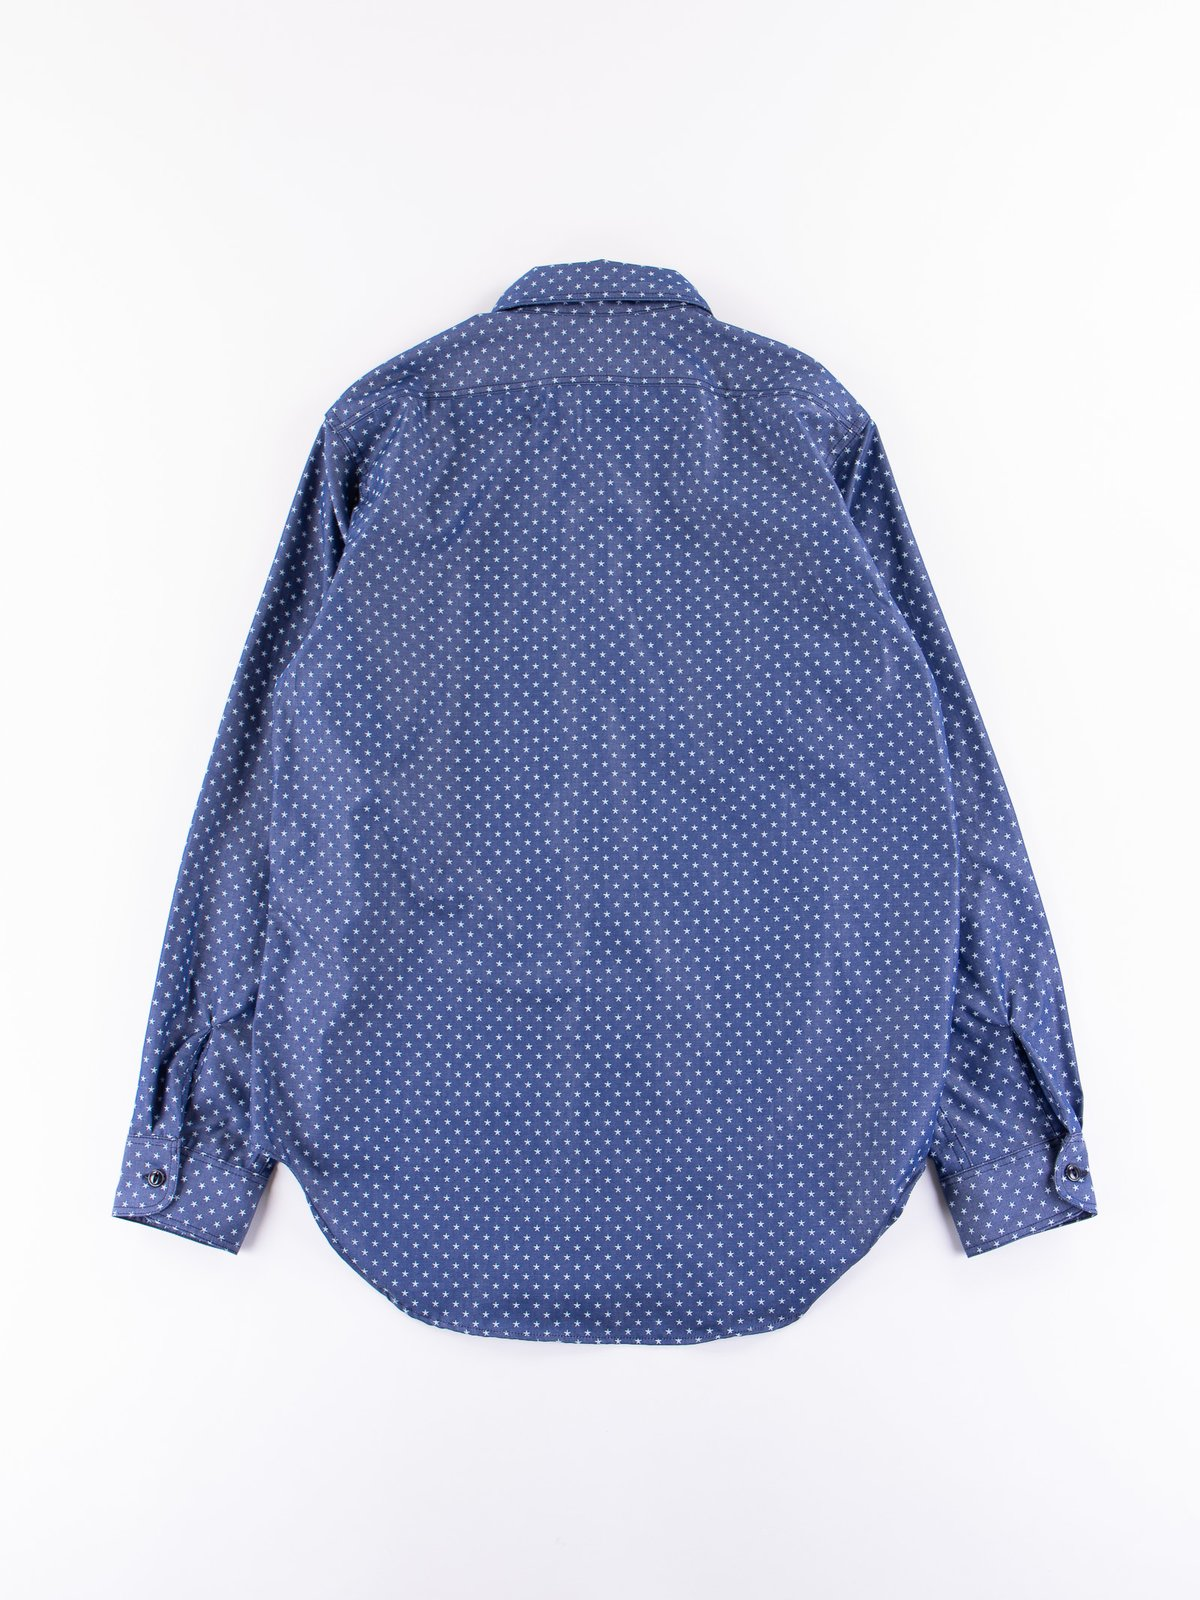 Navy Star Chambray Utility Shirt - Image 5